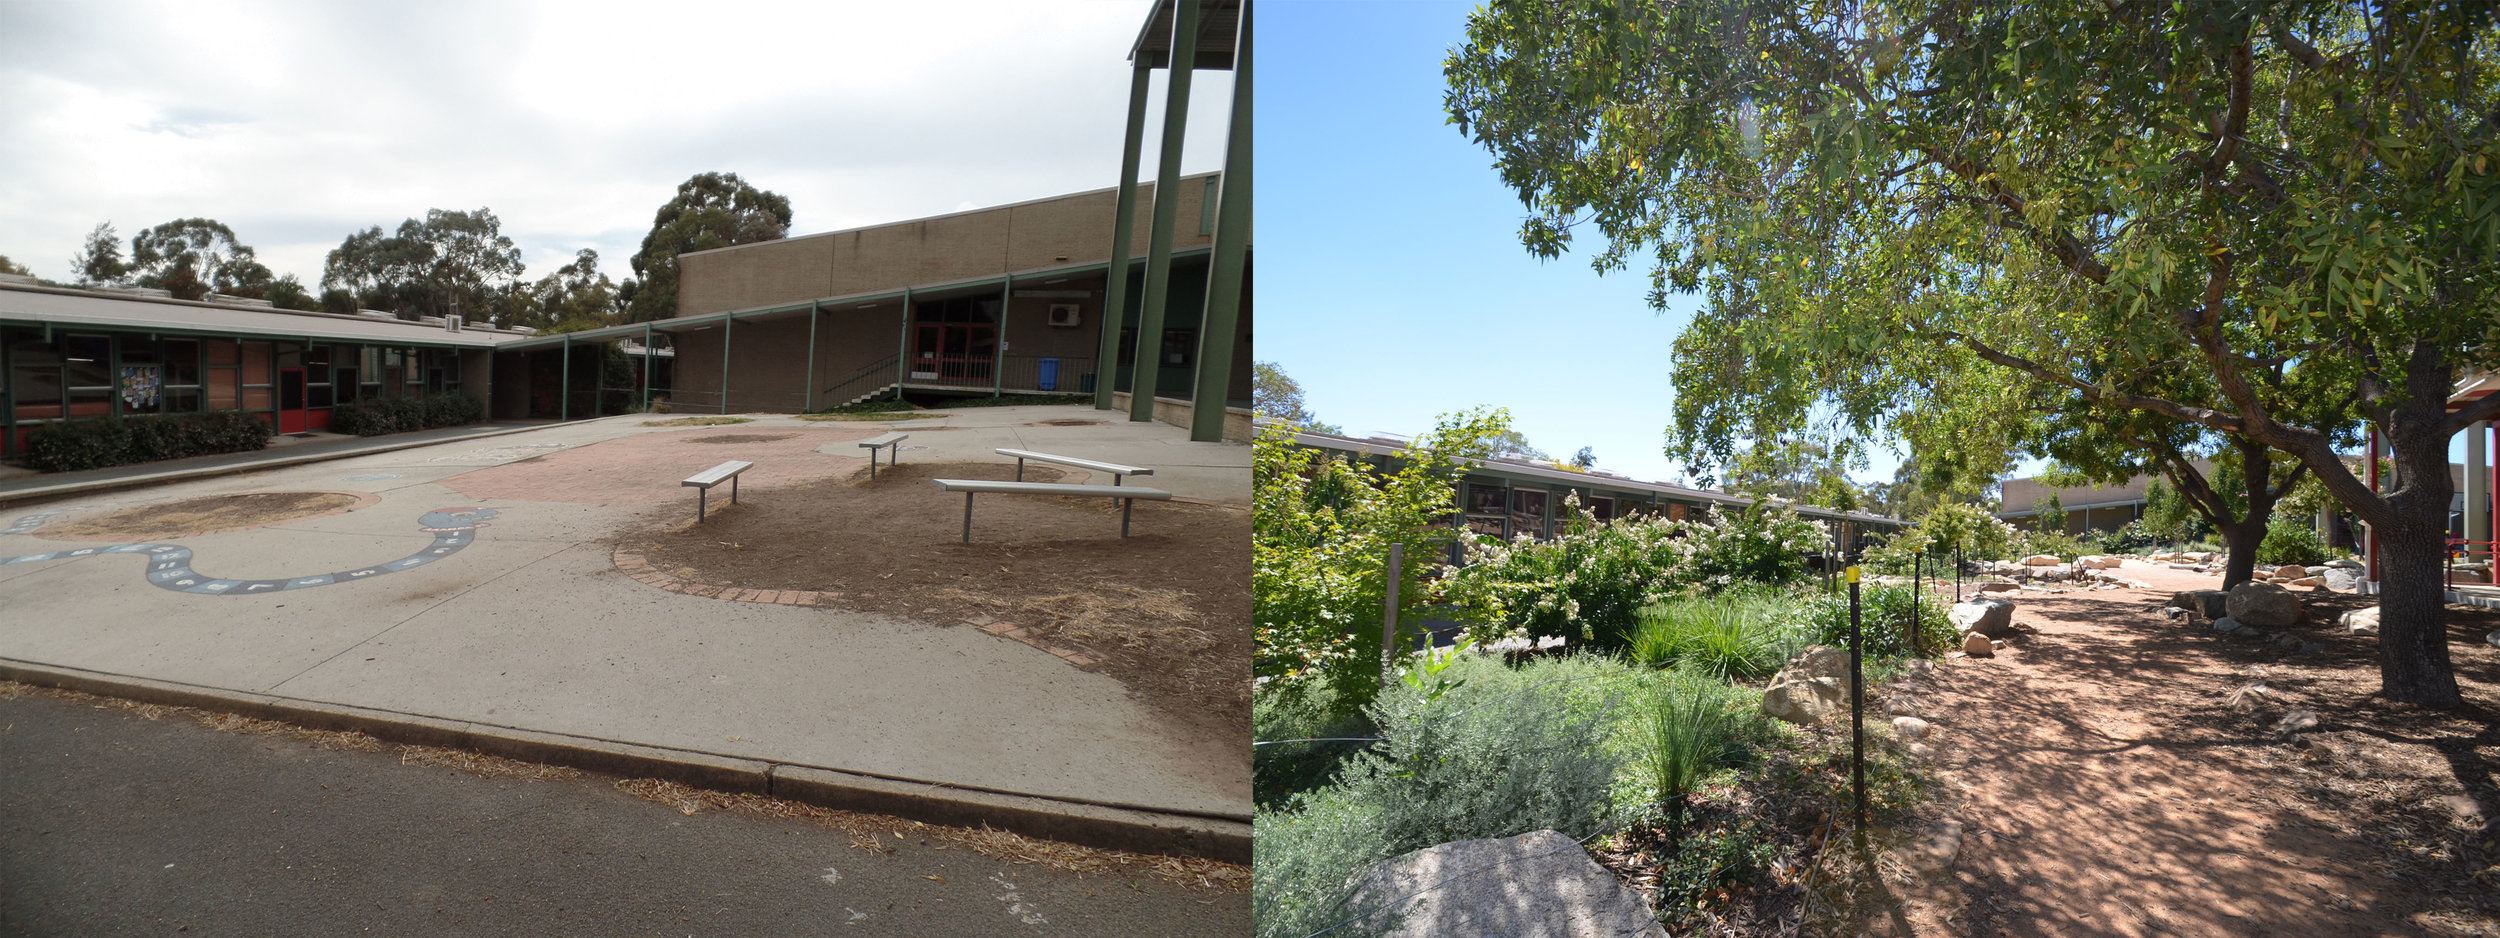 Aranda Primary School Before and After